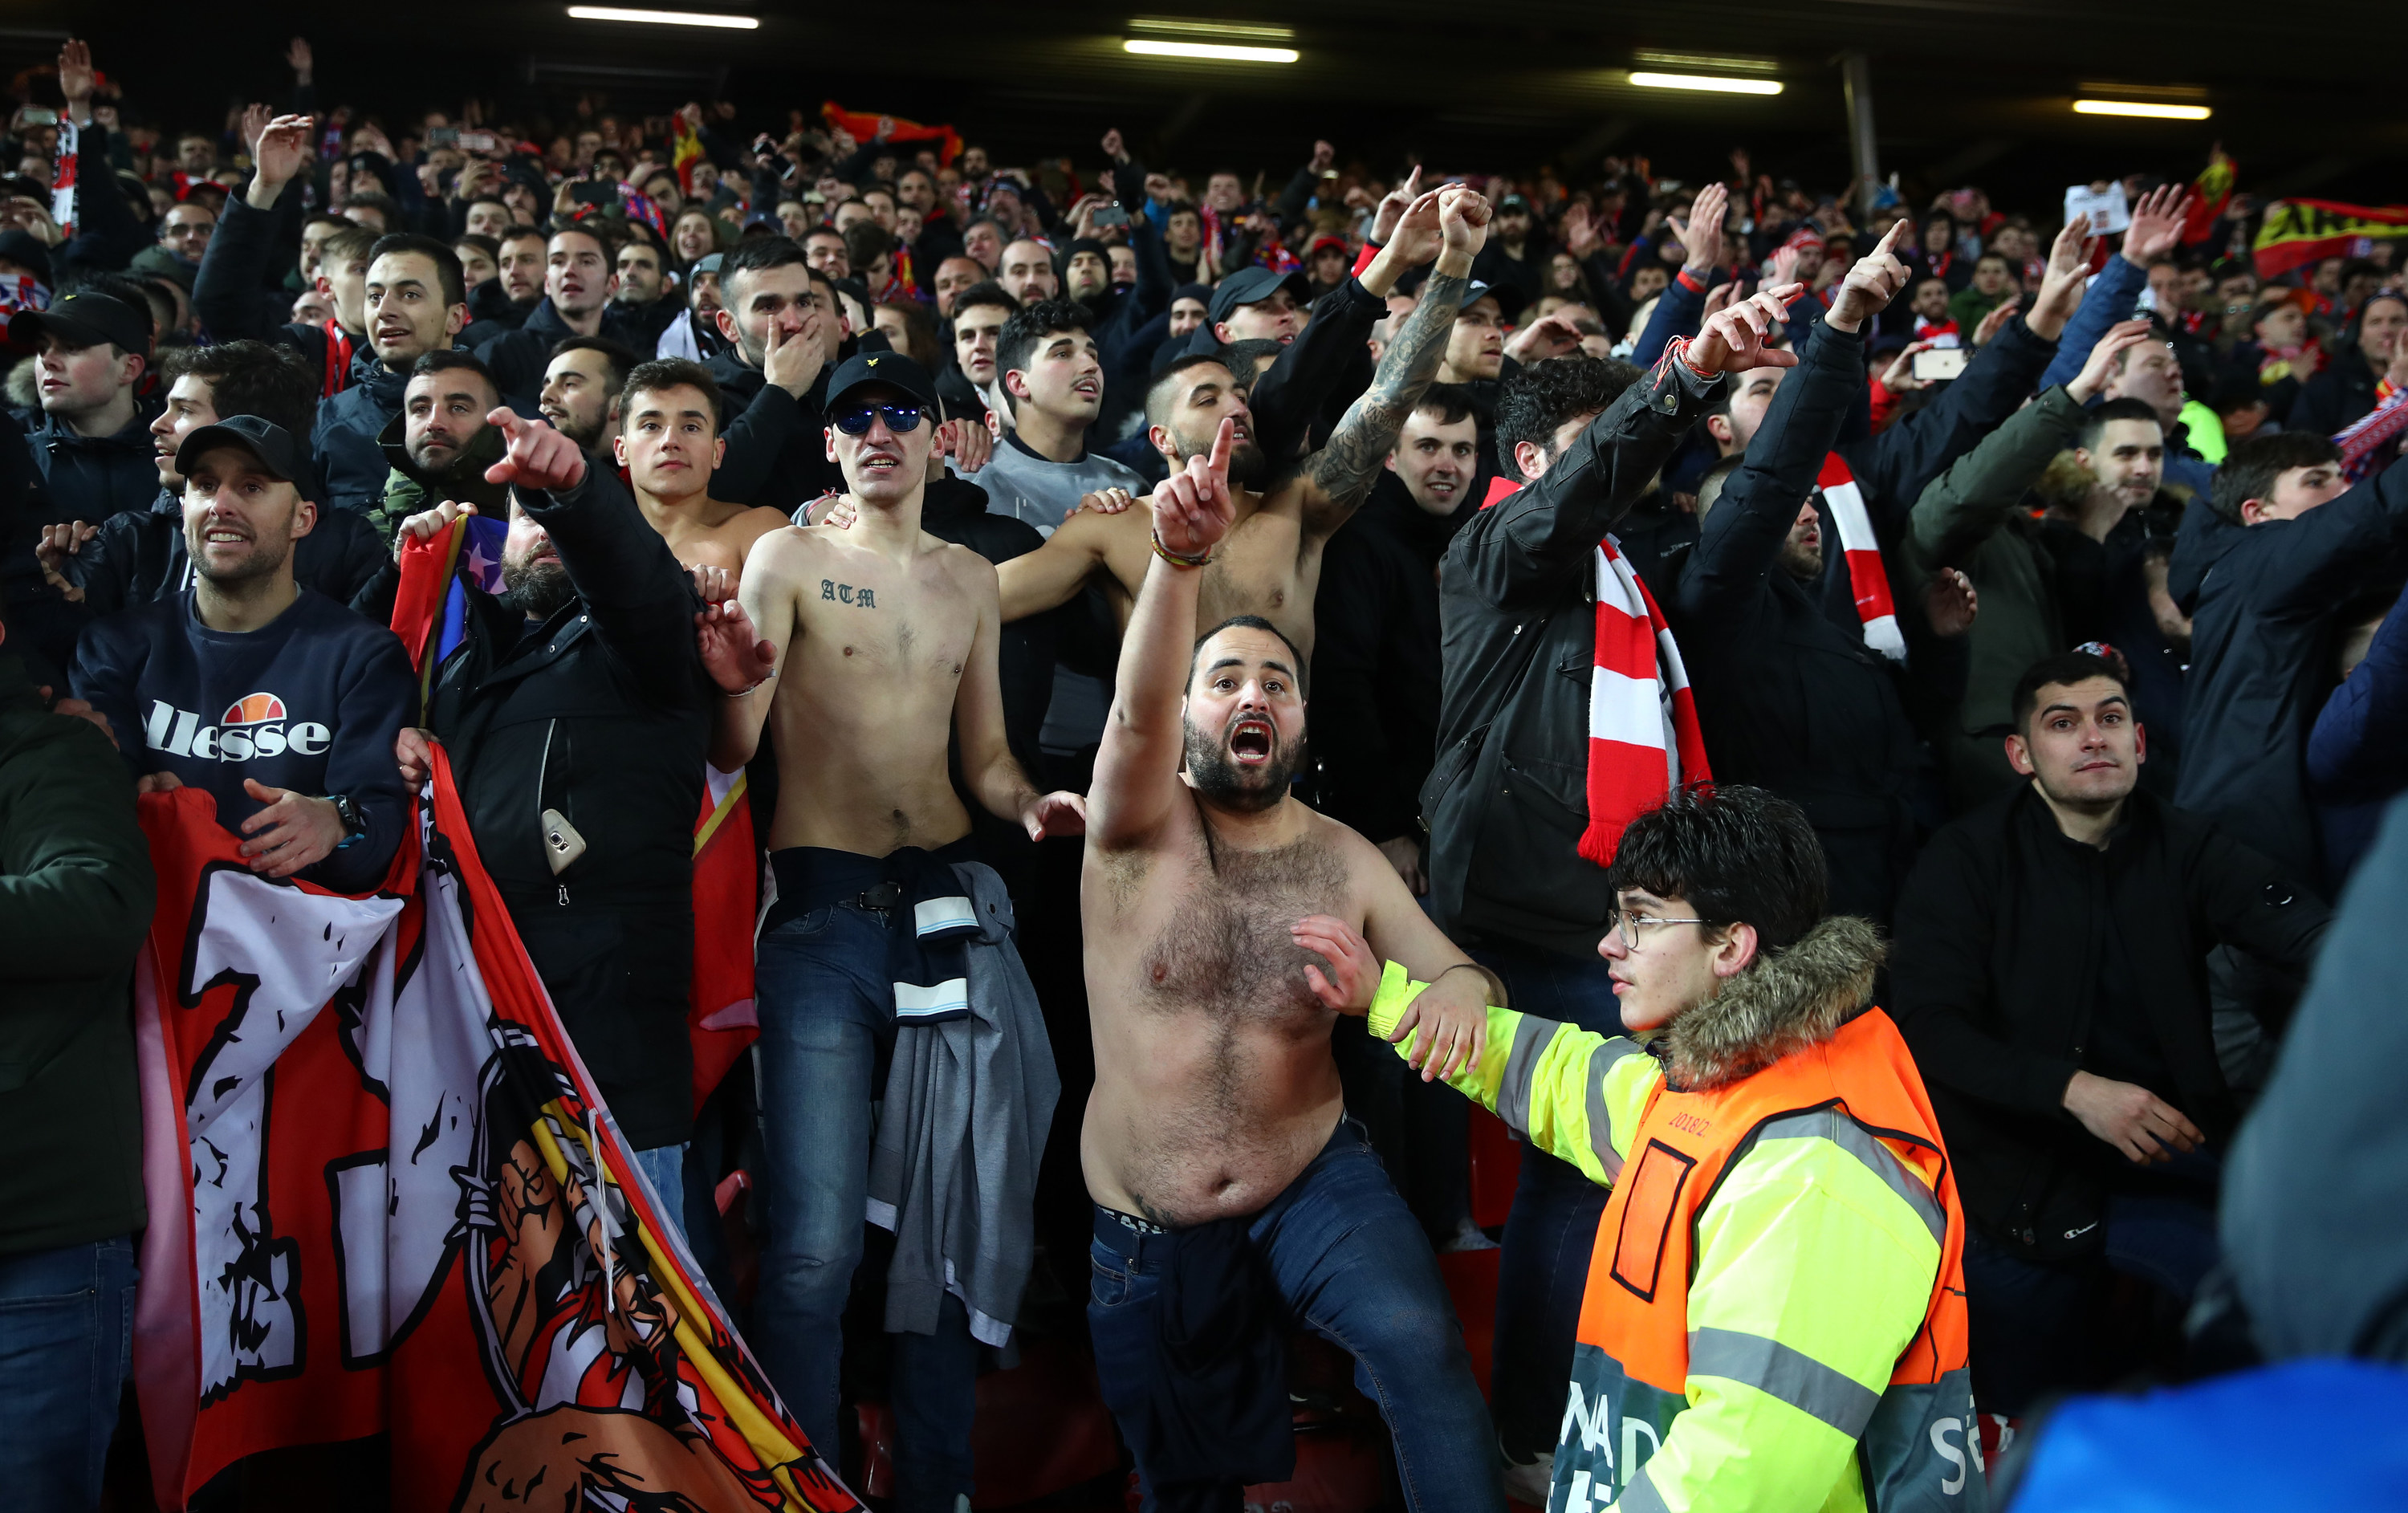 Liverpool fans cheering